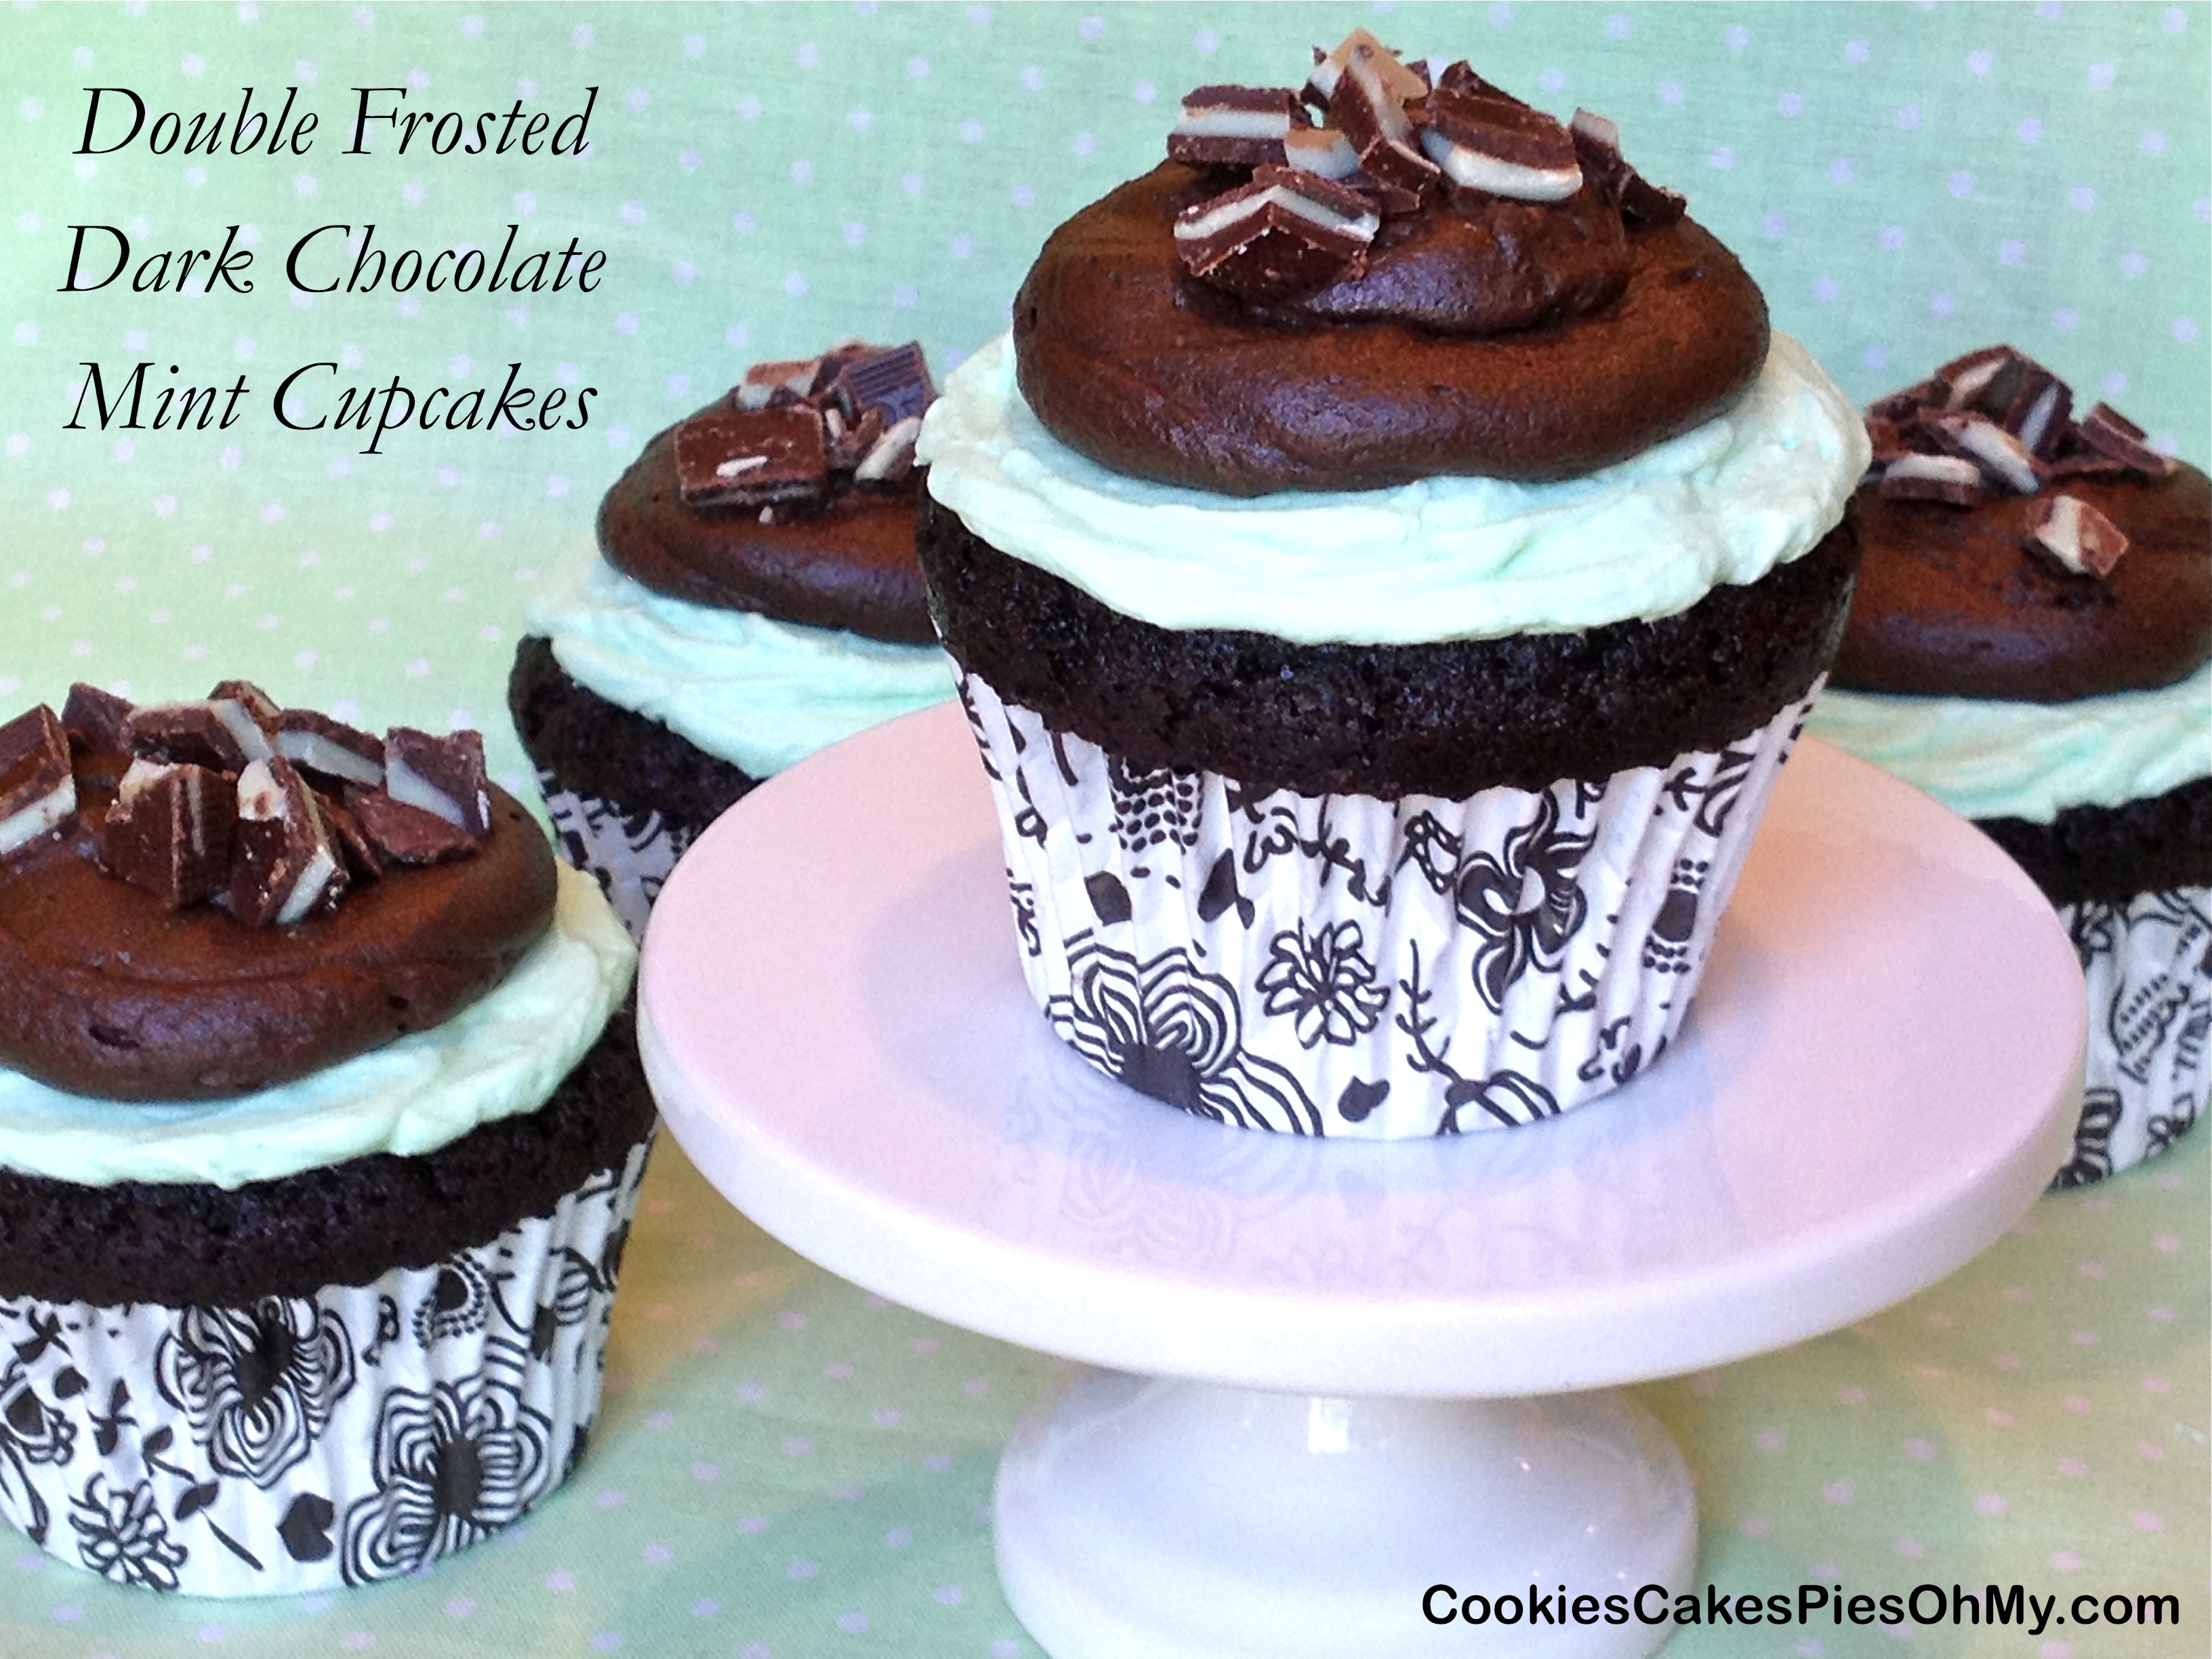 dark chocolate and mint combination! Everyone deserves a cupcake ...